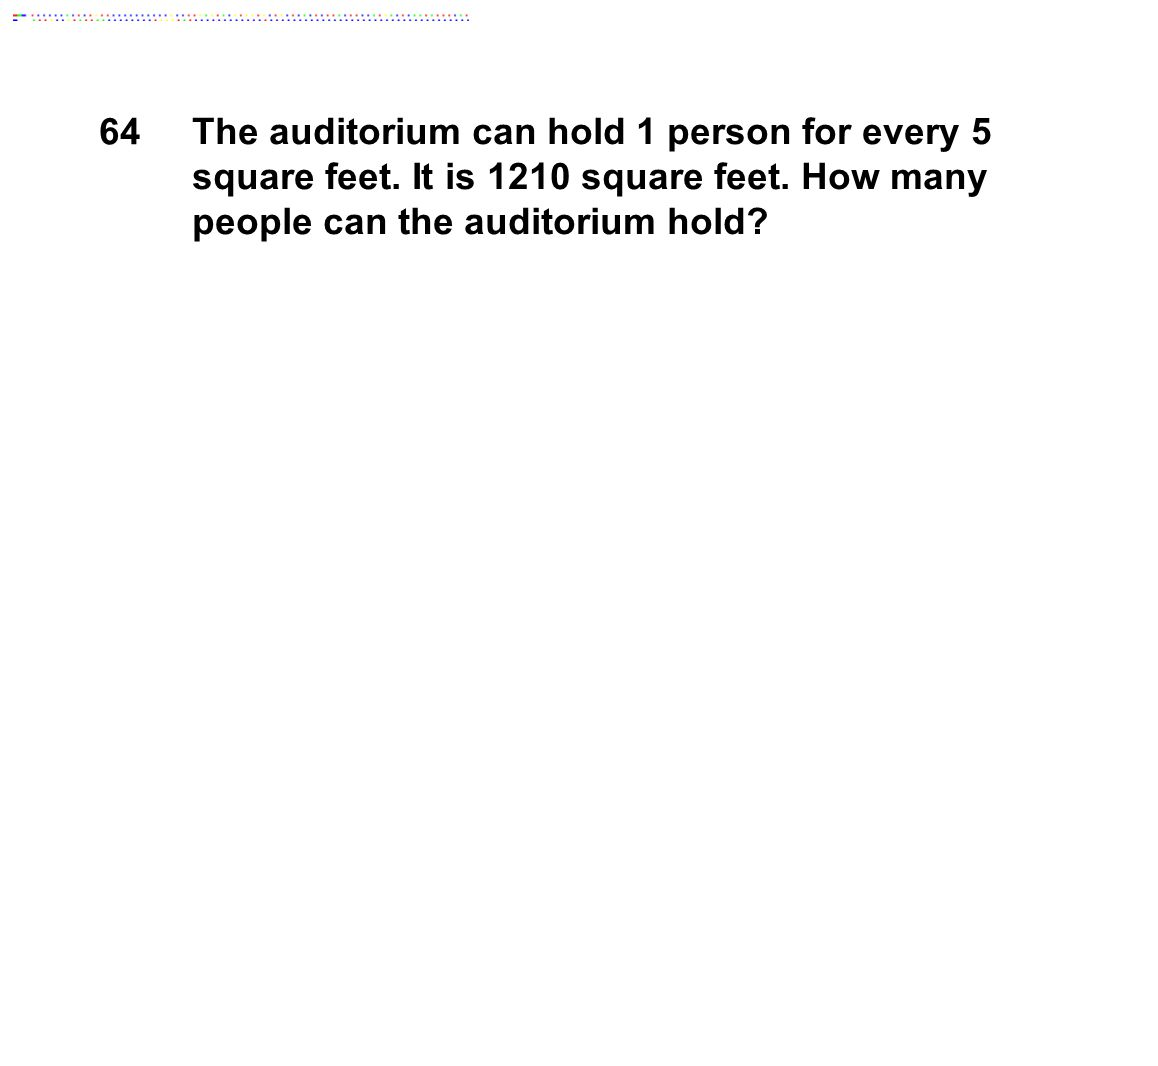 64 The auditorium can hold 1 person for every 5 square feet. It is 1210 square feet. How many people can the auditorium hold